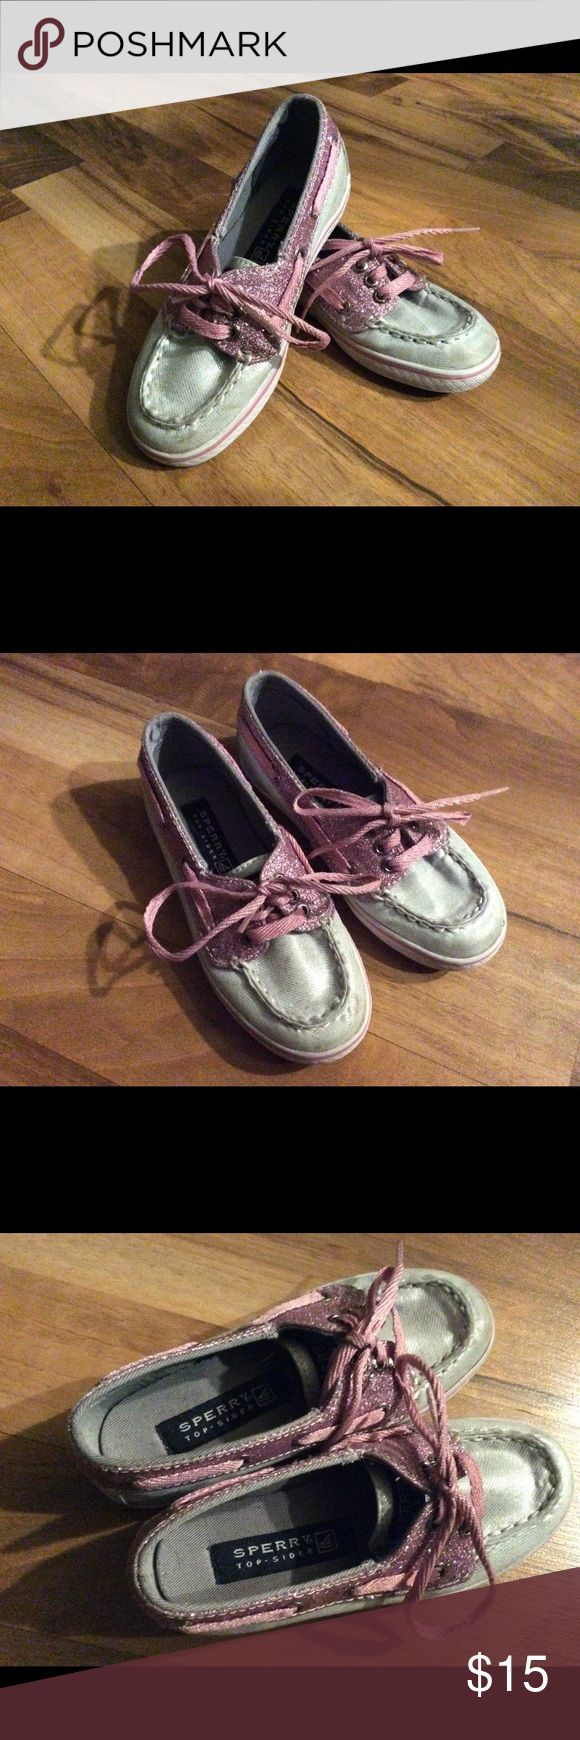 Sperry Top-Sider Cruiser Kids 10.5M Girls Toddler size 10.5M Silver & Pink Sperry Top-Sider Cruiser some light spots on the toes. No other spots that I️ could find. Med/light wear overall.  Non-smoking environment. Cat-friendly (not really, but he lives here & sneaks in the posh room when we're not looking) environment.  I try to ship within 24hrs of sale. Sperry Top-Sider Shoes